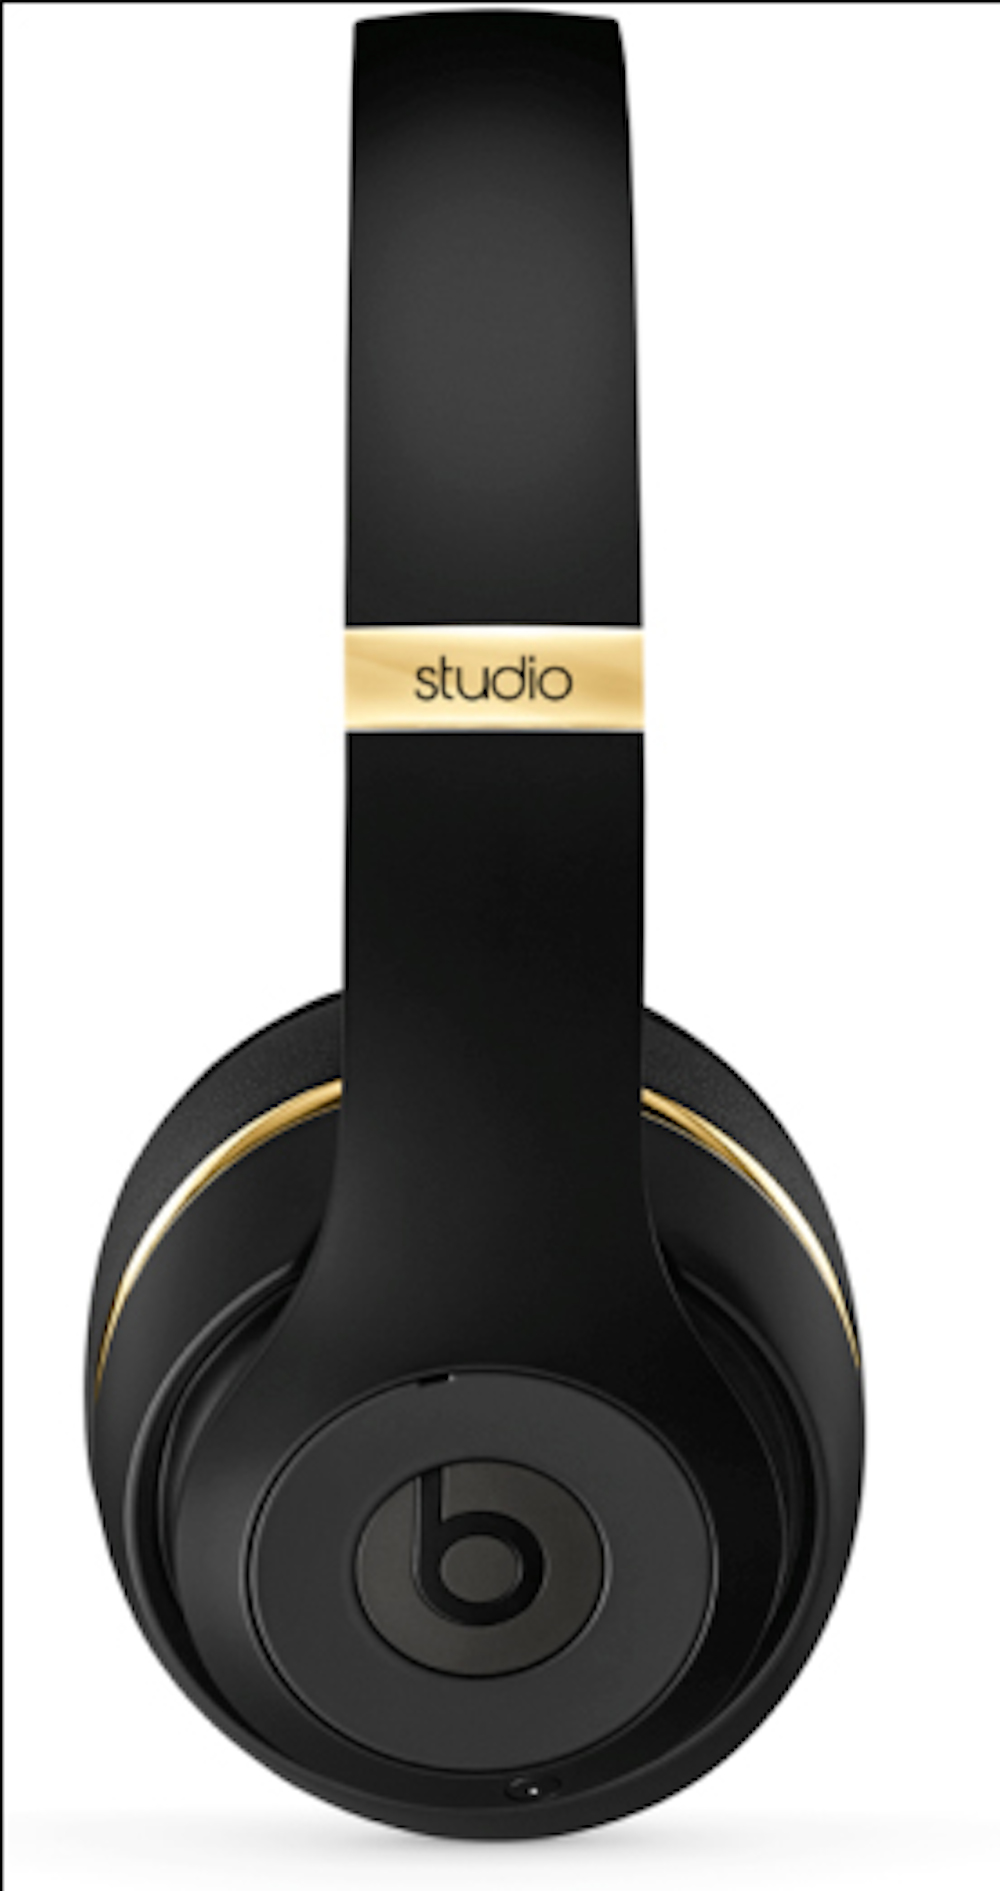 RBT Technology reveals the Limited Edition Beats By dr.dre